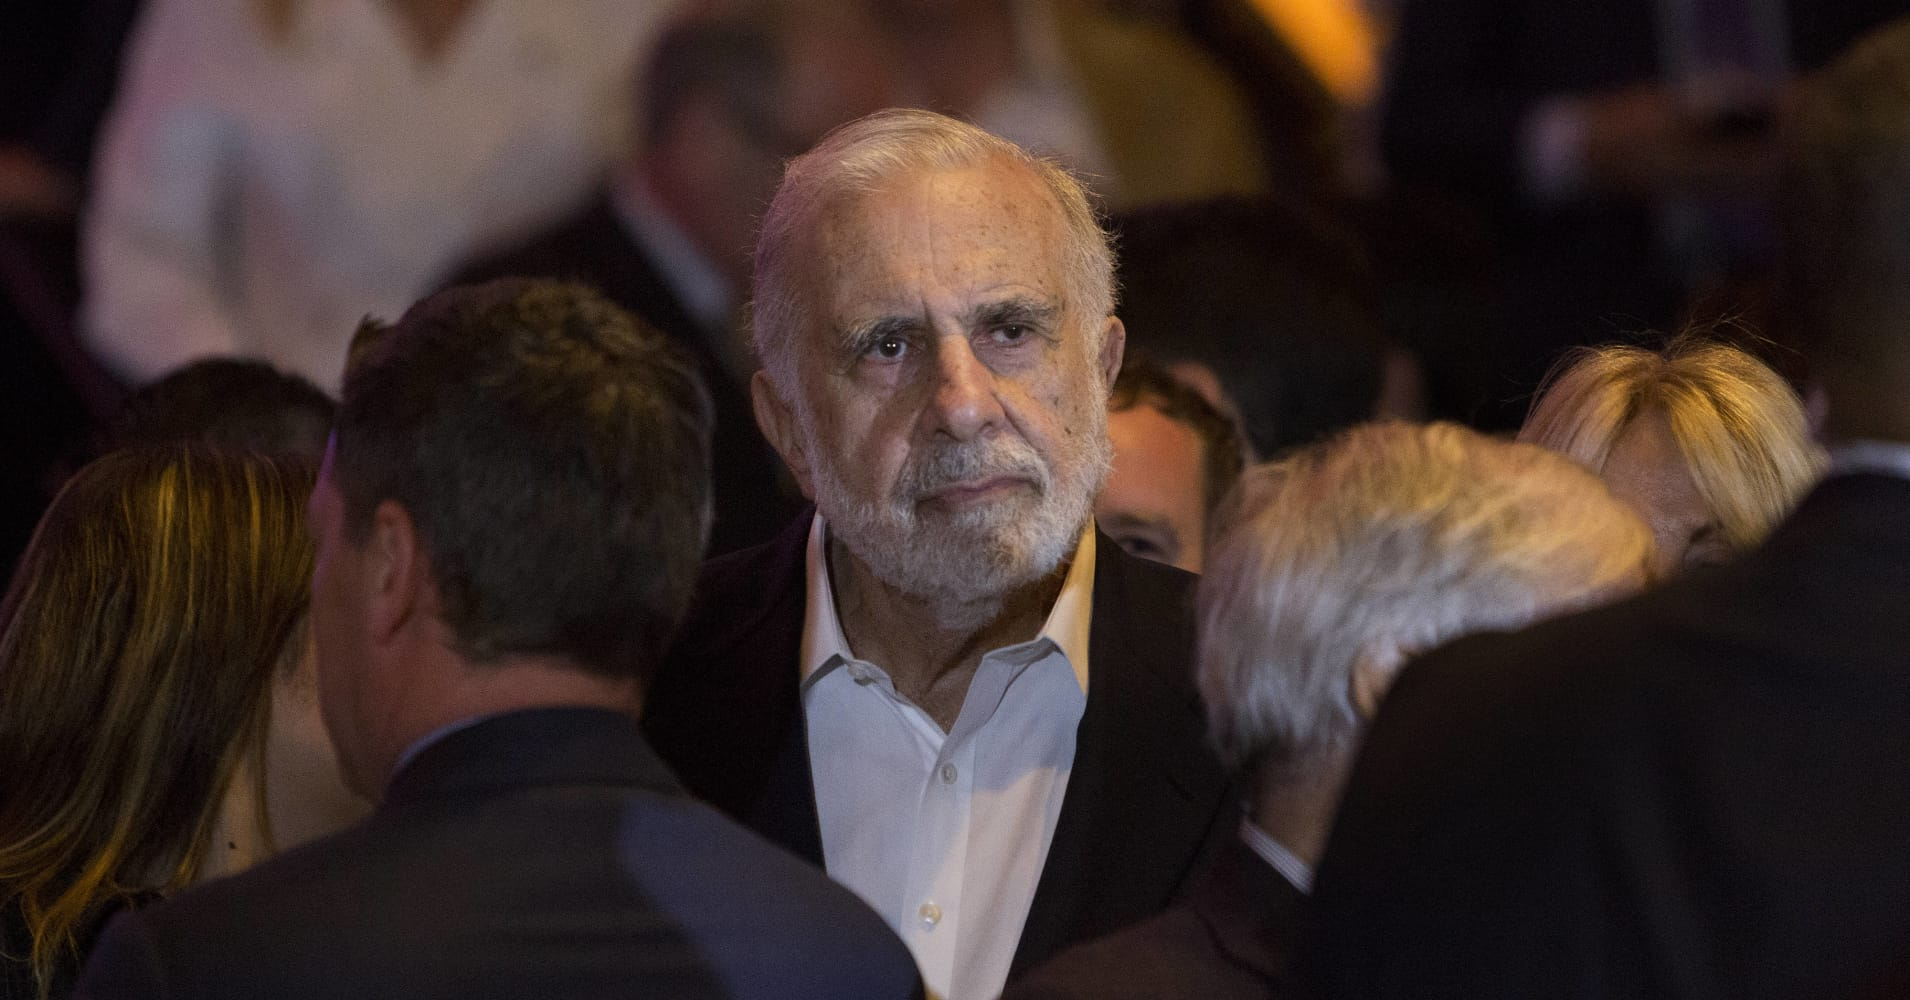 Carl Icahn, billionaire activist investor, waits for Donald Trump, president and chief executive of Trump Organization Inc. and 2016 Republican presidential candidate, not pictured, to speak at an election night event in New York, U.S., on Tuesday, April 19, 2016.